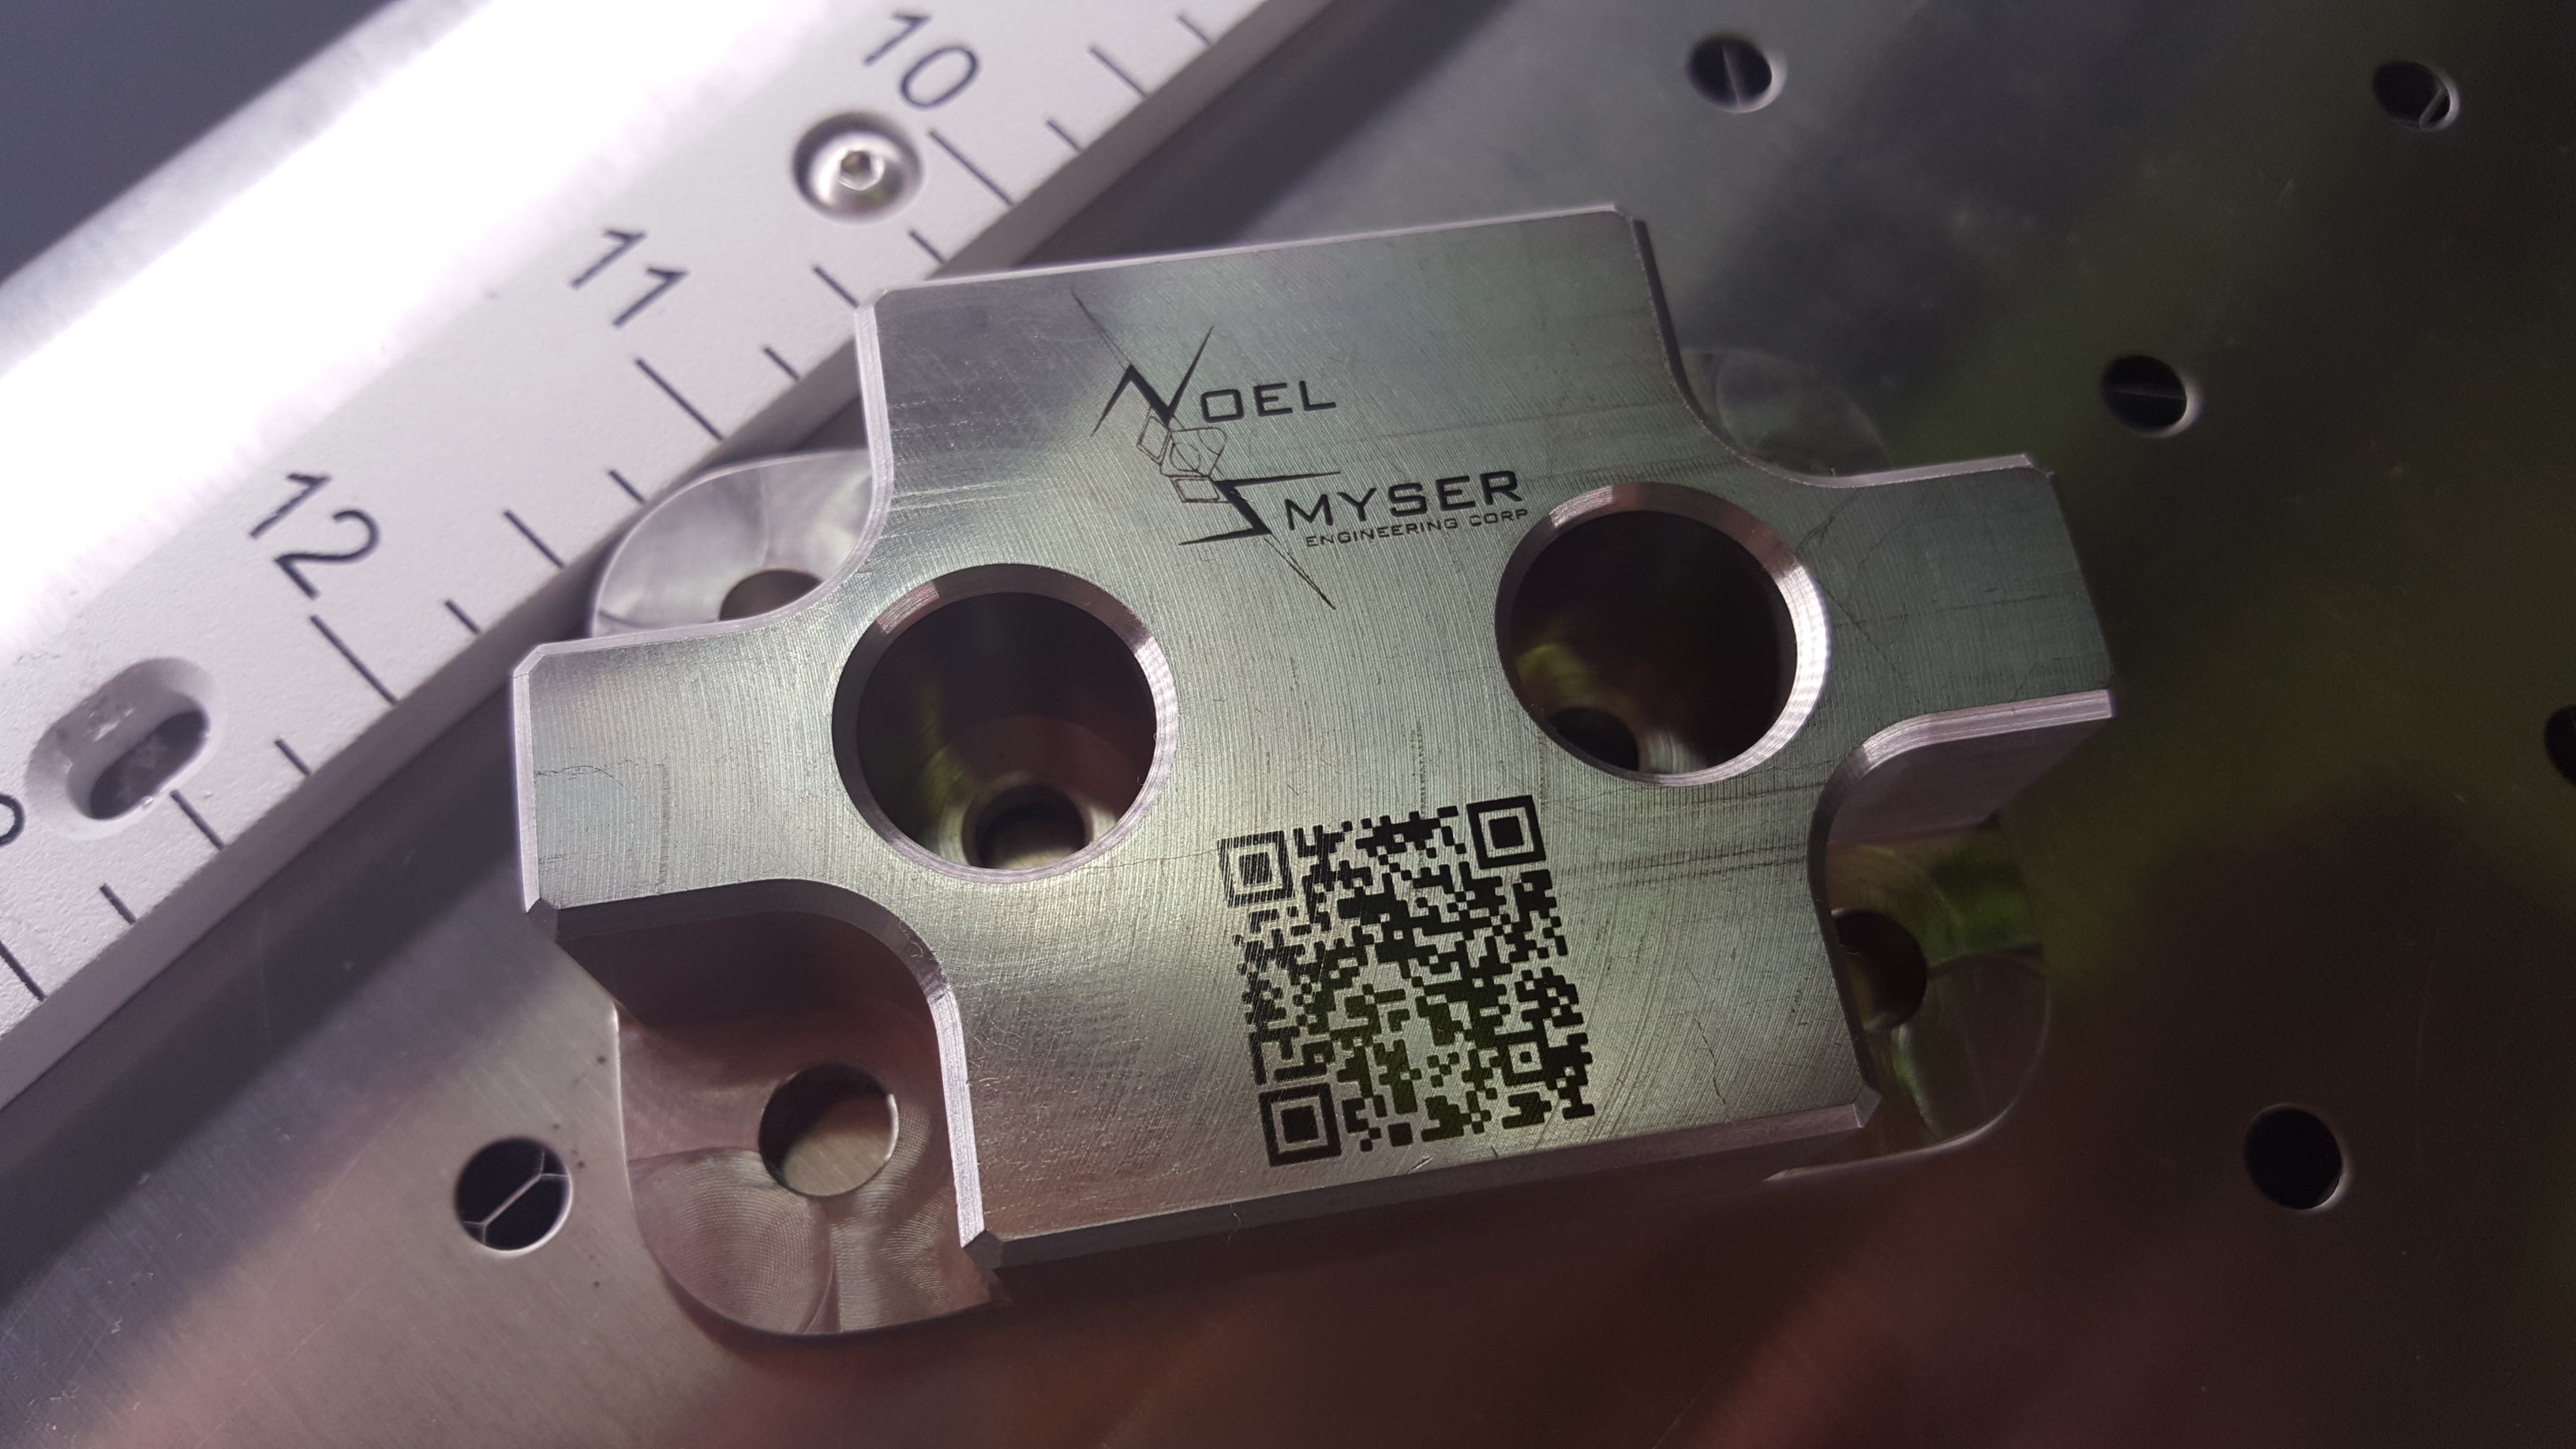 Machining and laser marking